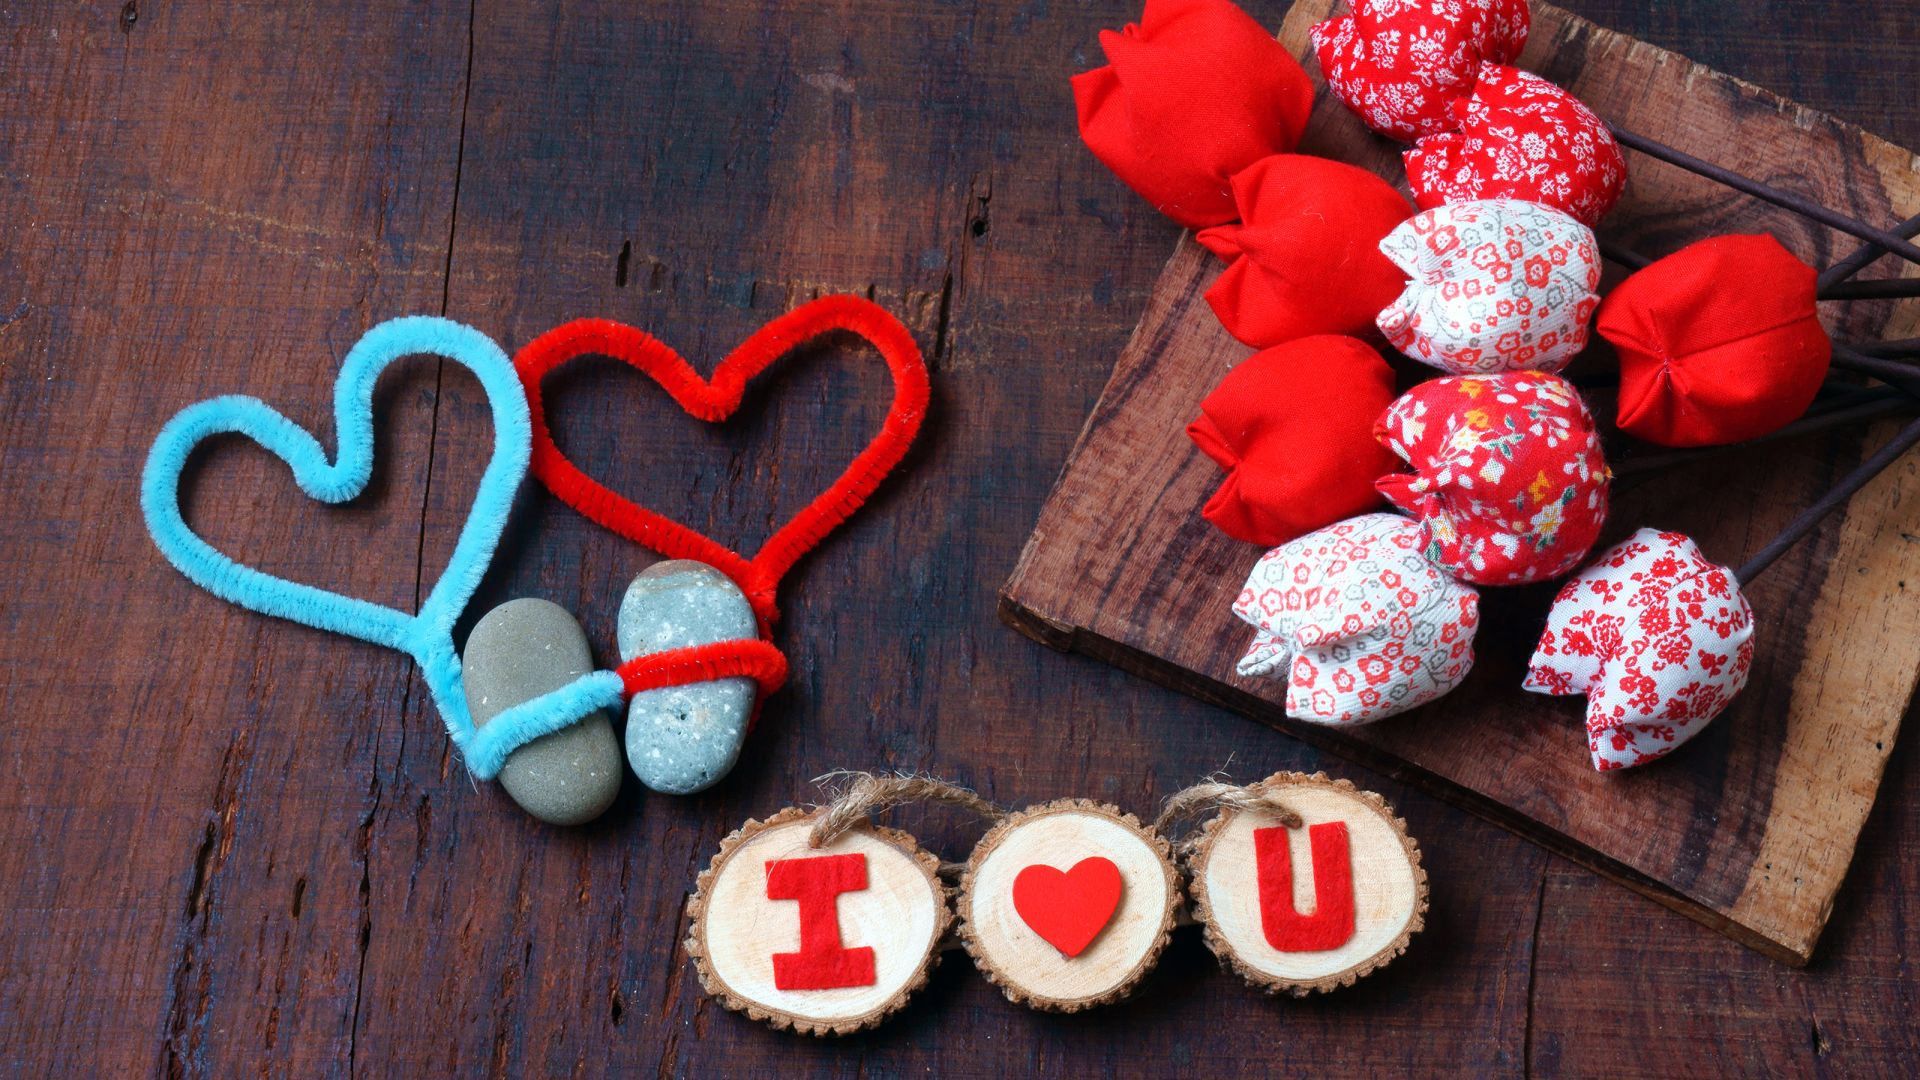 Valentine's Day, heart, decorations, tulip, romantic, love (horizontal)